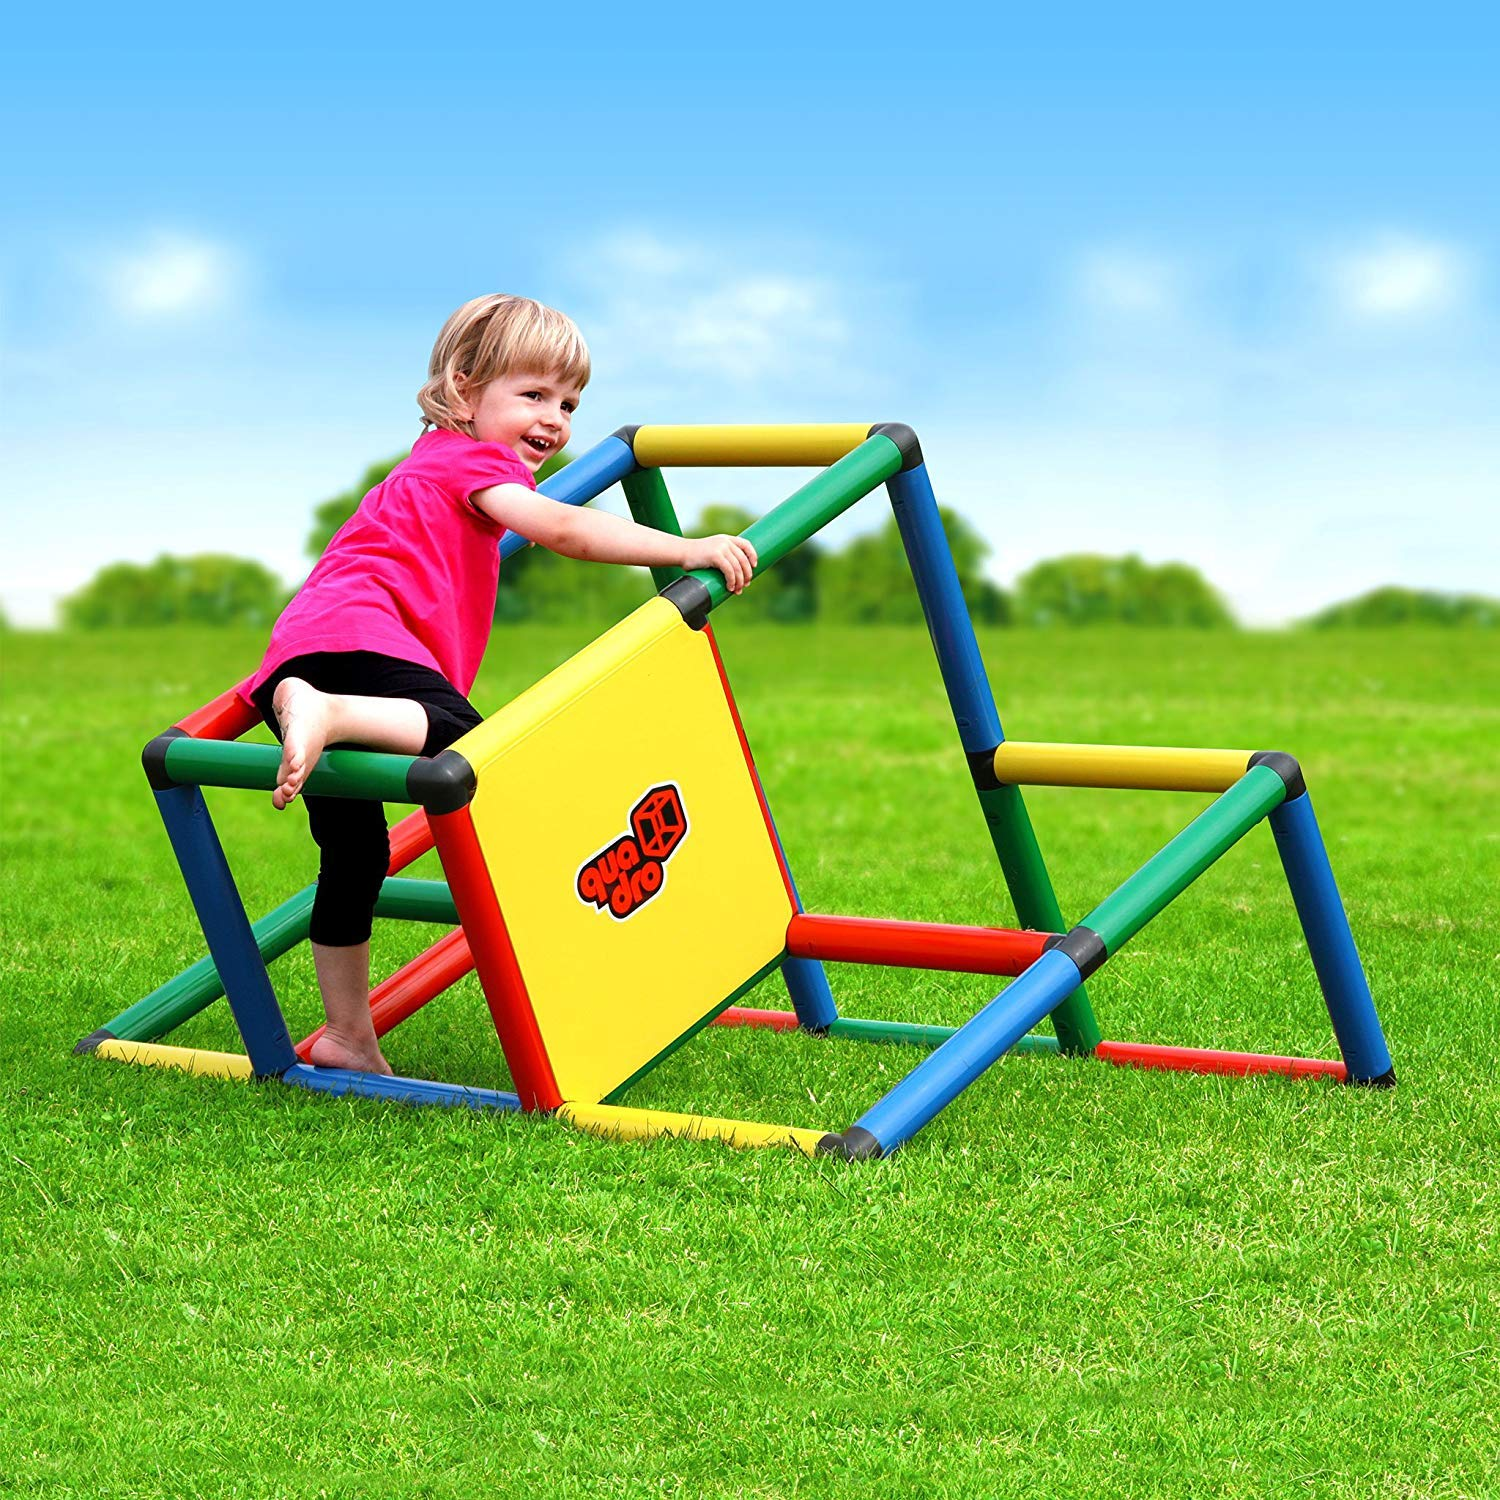 Quadro My First Rugged Indoor/Outdoor Climber, Tot/Toddler Jungle Gym, Expandable Modular Educational Component Playset, Giant Construction KIt, Play Structure, for Kids Ages 1-6 Years.